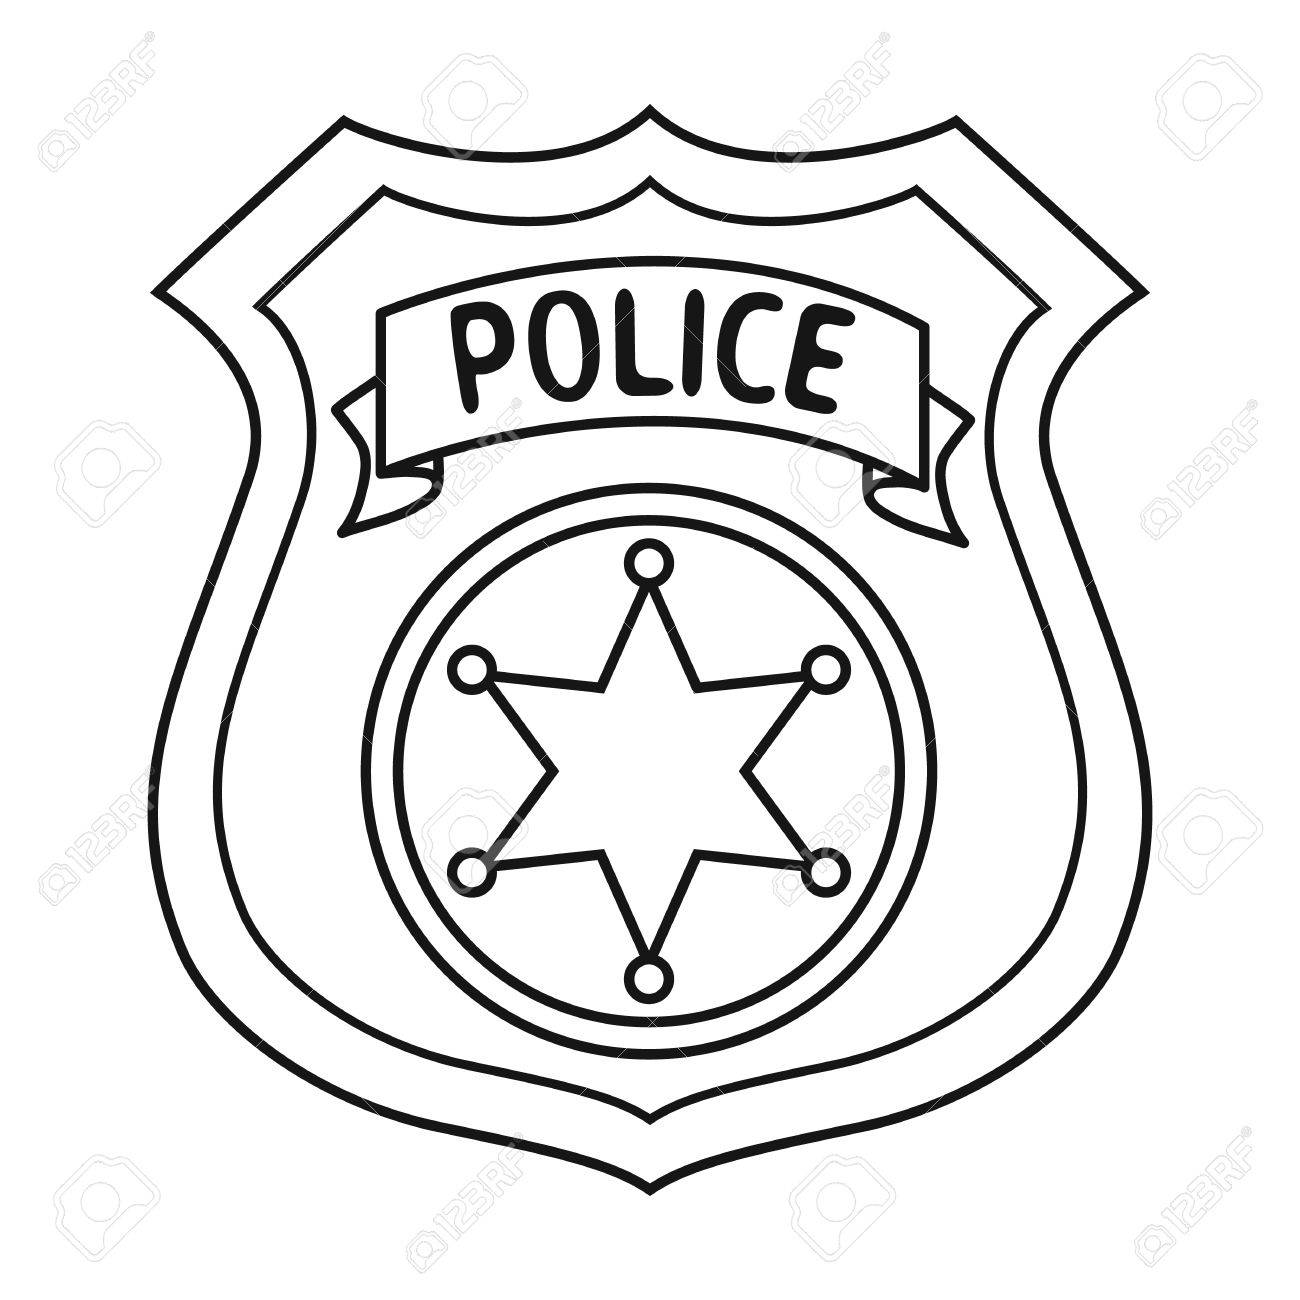 Police badge officer. Sheriff clipart free download